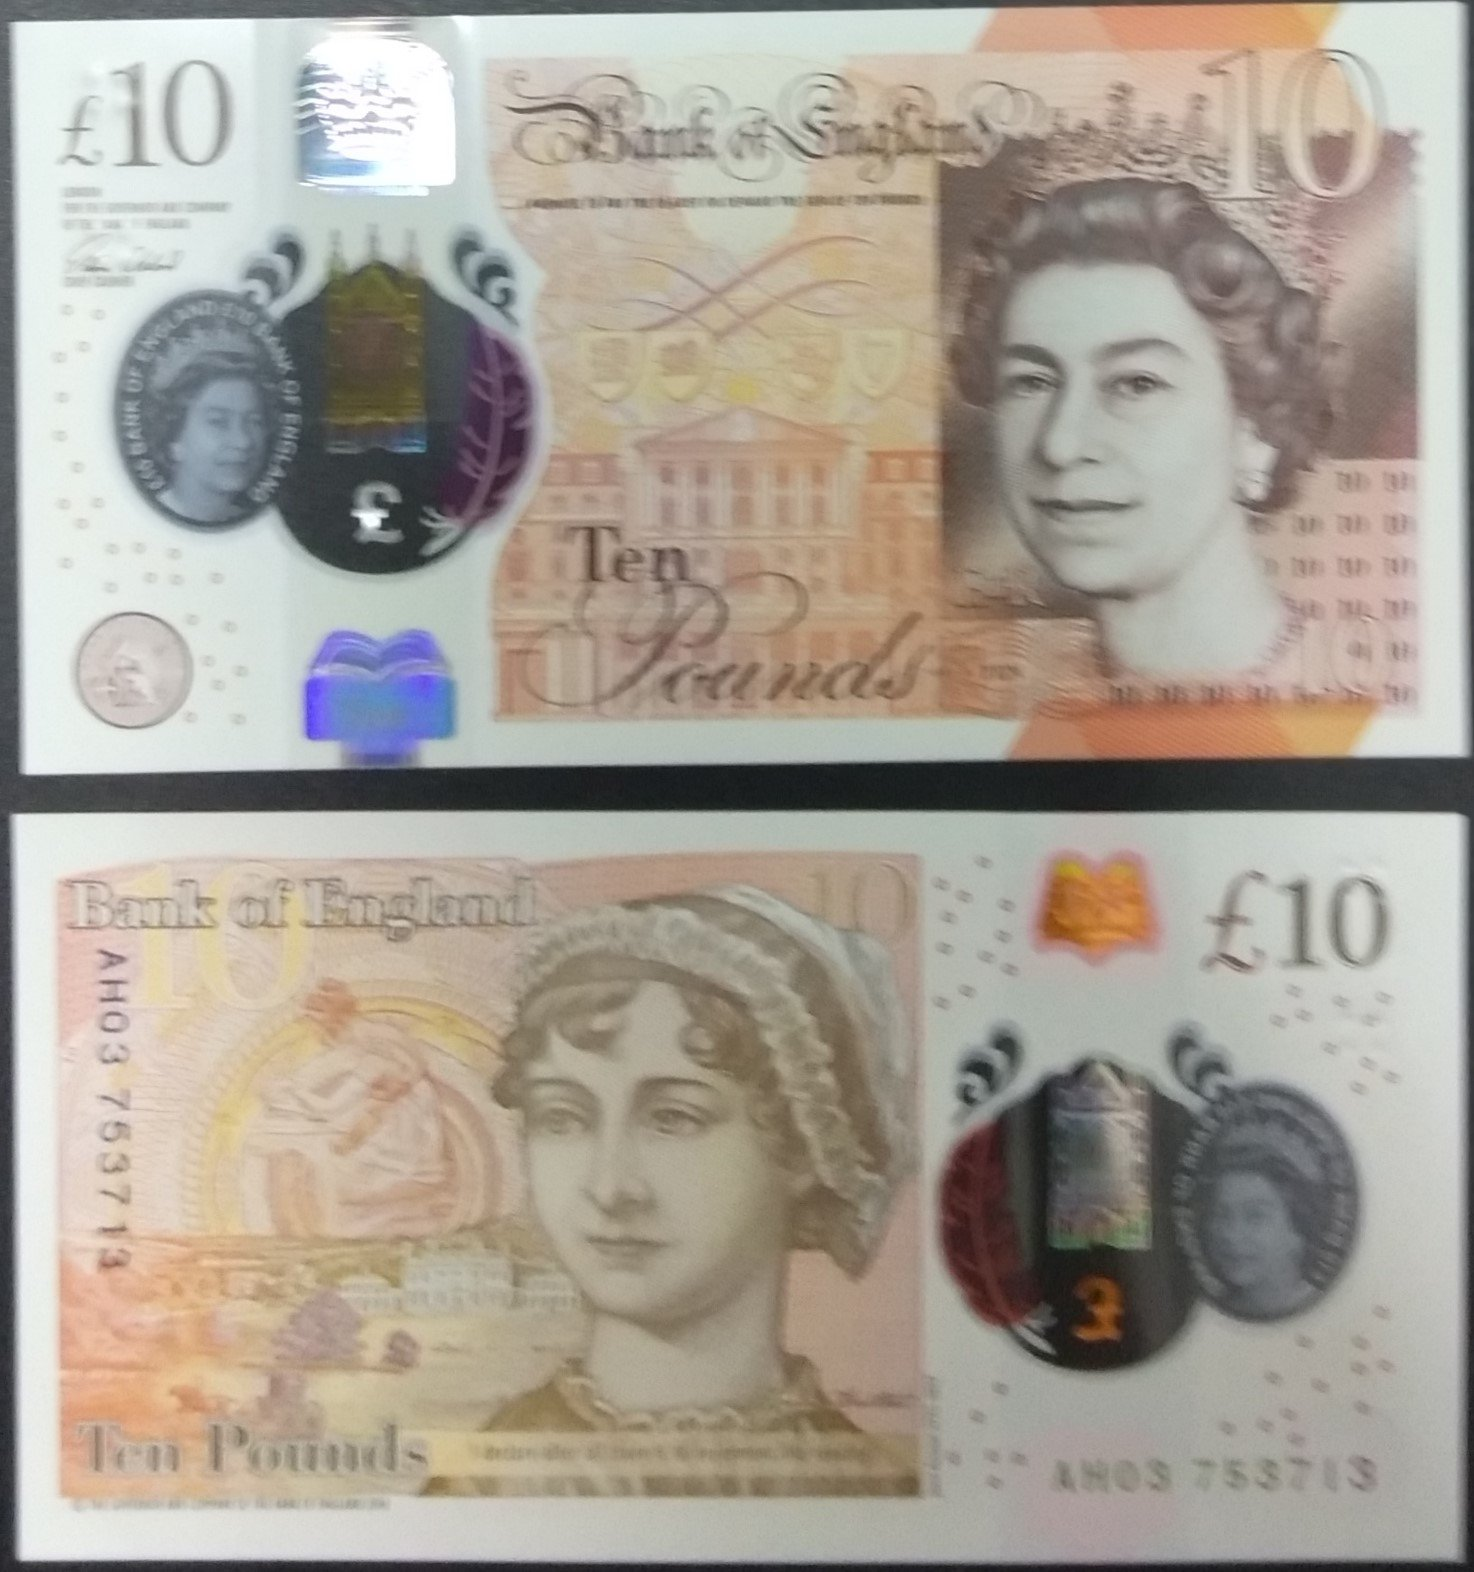 Great britain 10 pounds banknote for sale